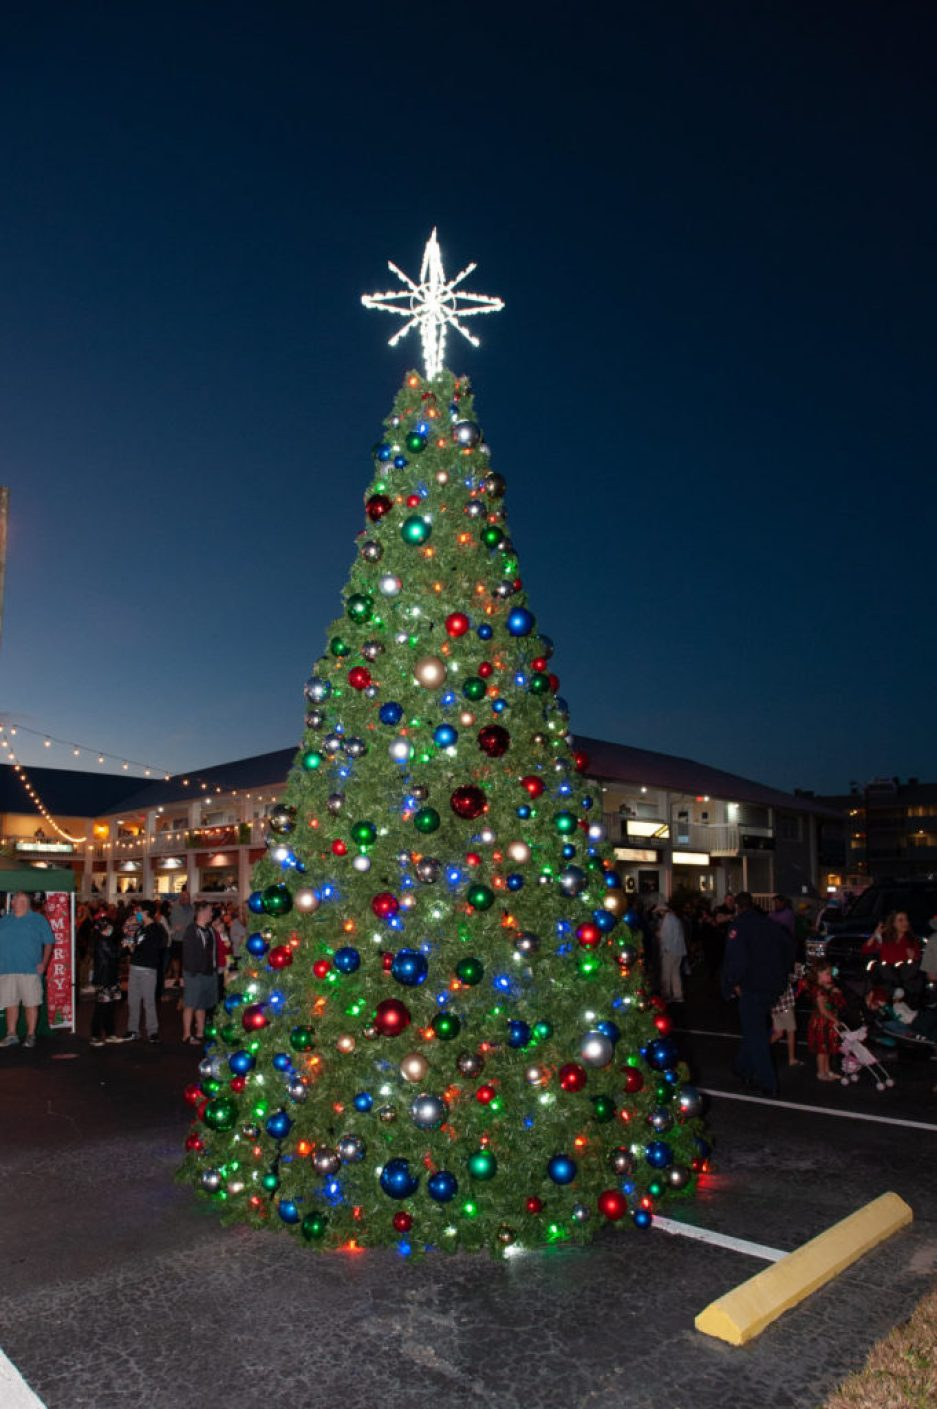 A photo of a large lit Christmas tree with a white star on top at night.